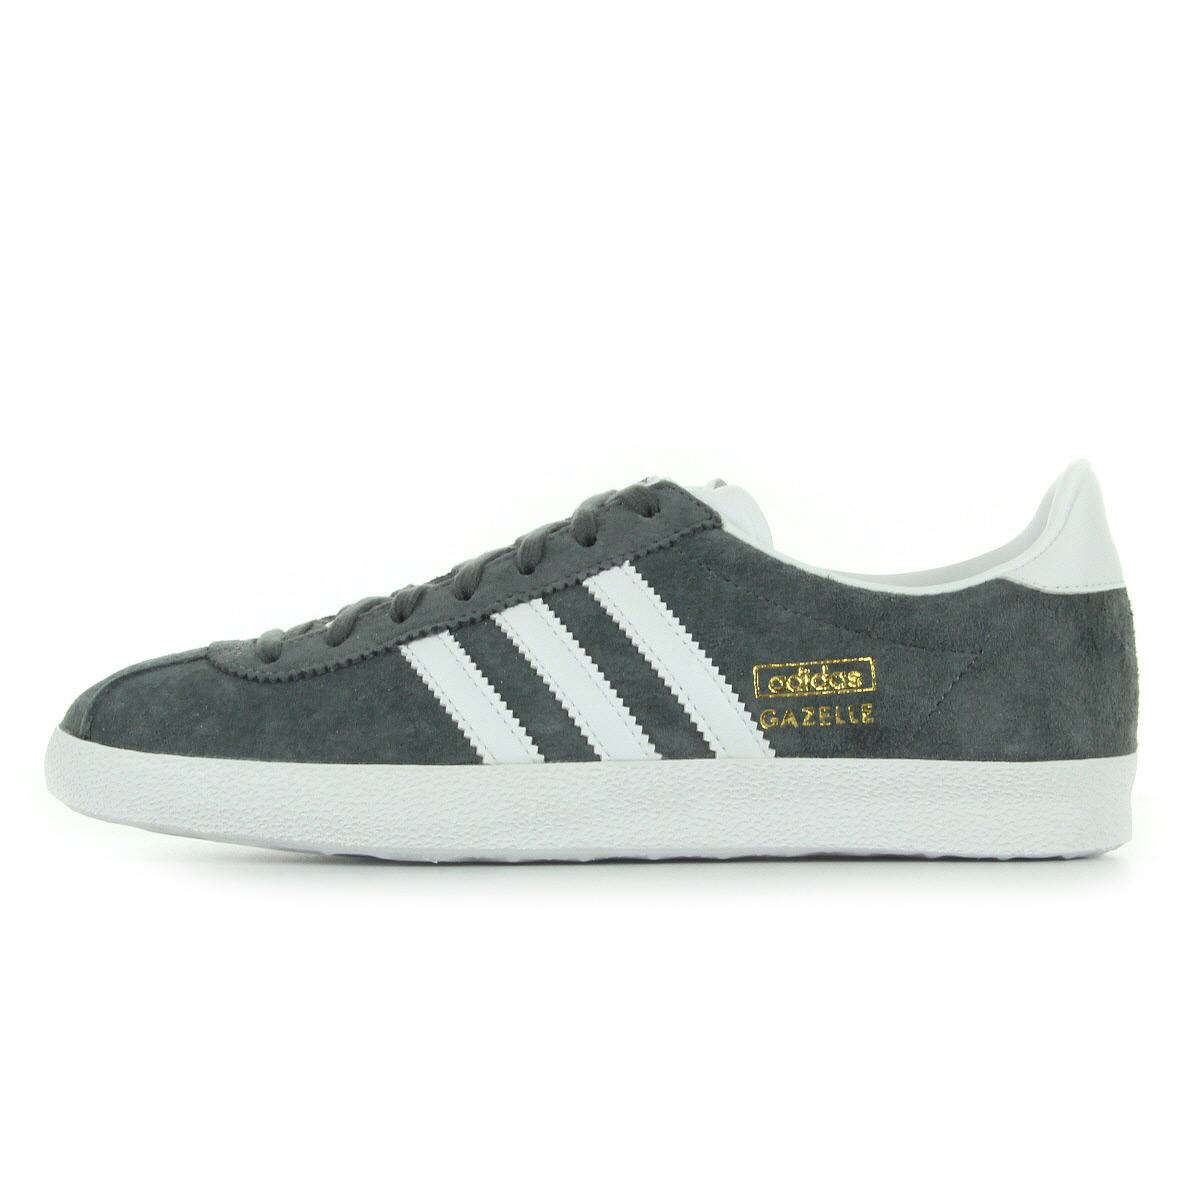 chaussures baskets adidas homme gazelle og taille gris grise cuir lacets ebay. Black Bedroom Furniture Sets. Home Design Ideas